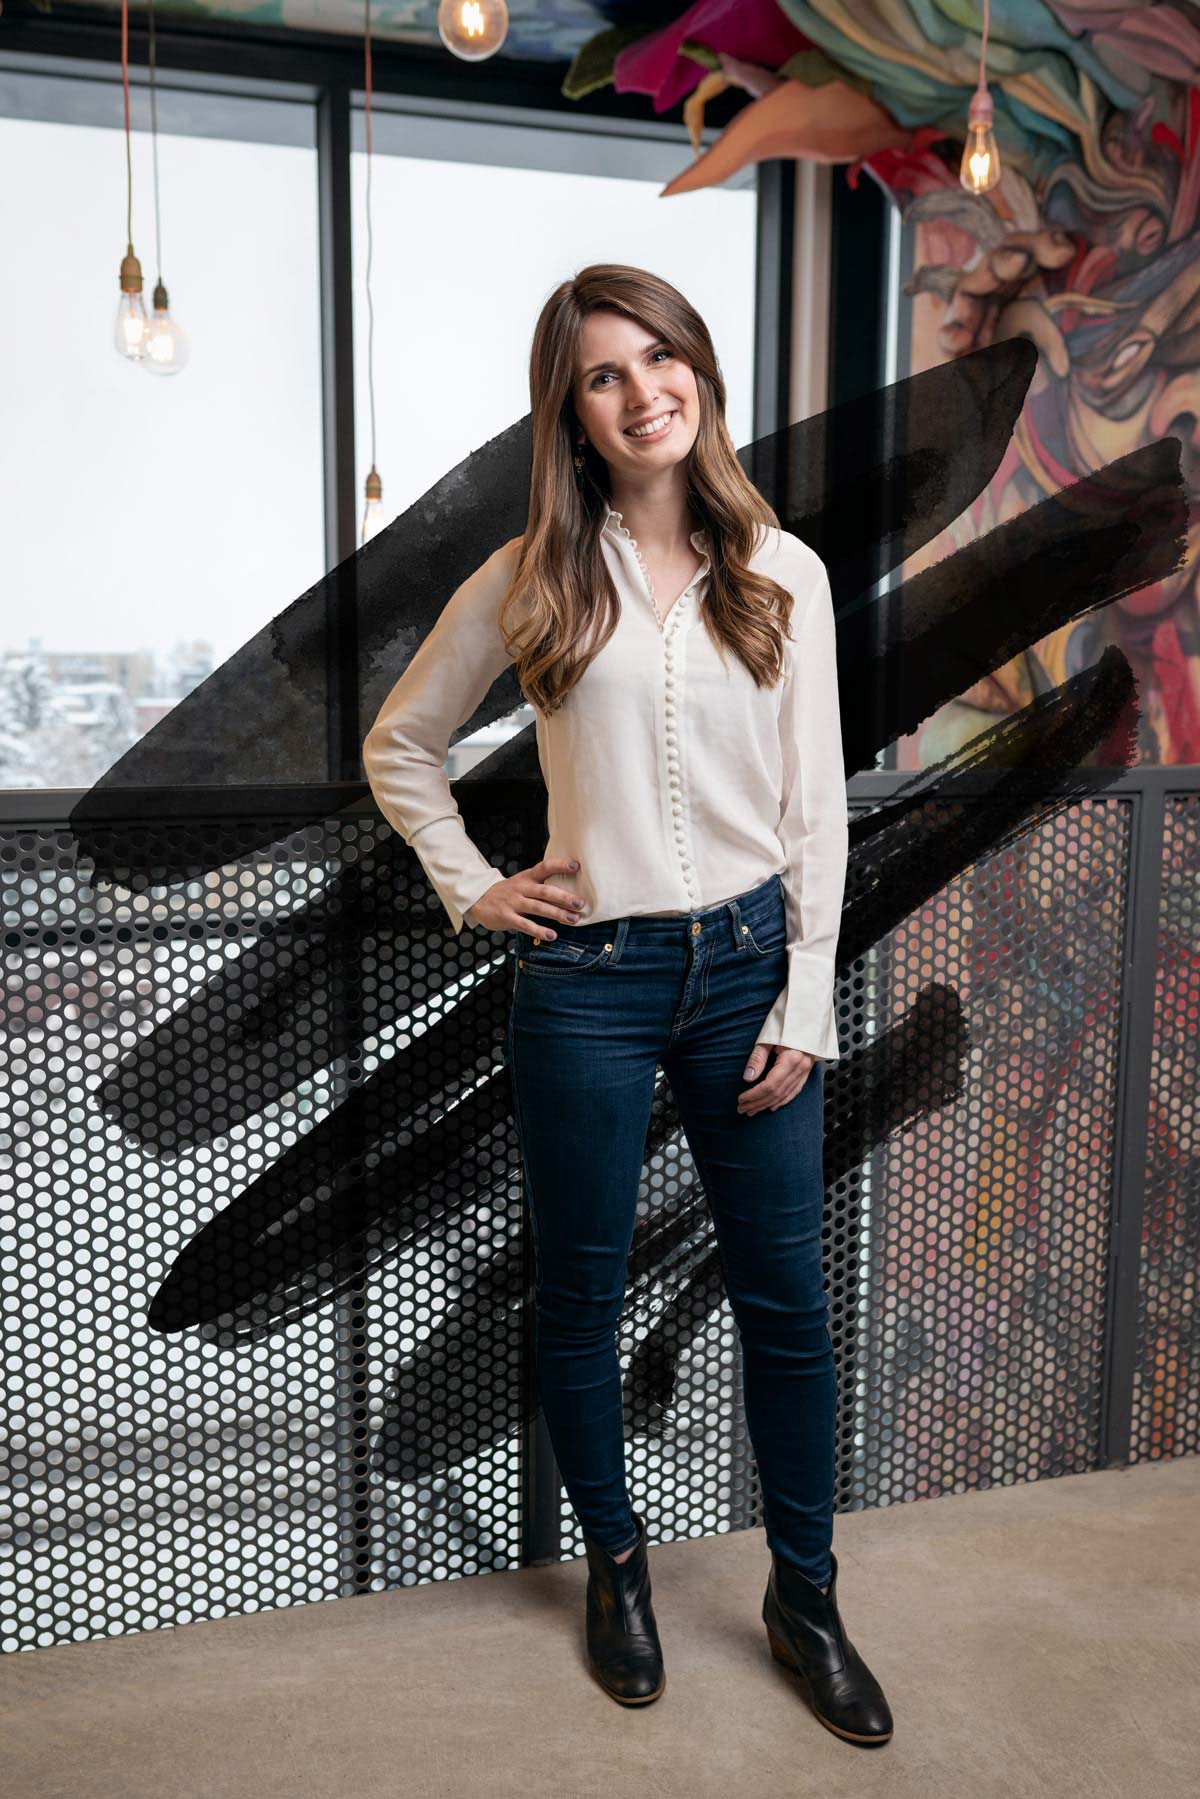 Kirstie-Lush-Project-Manager-Calgary